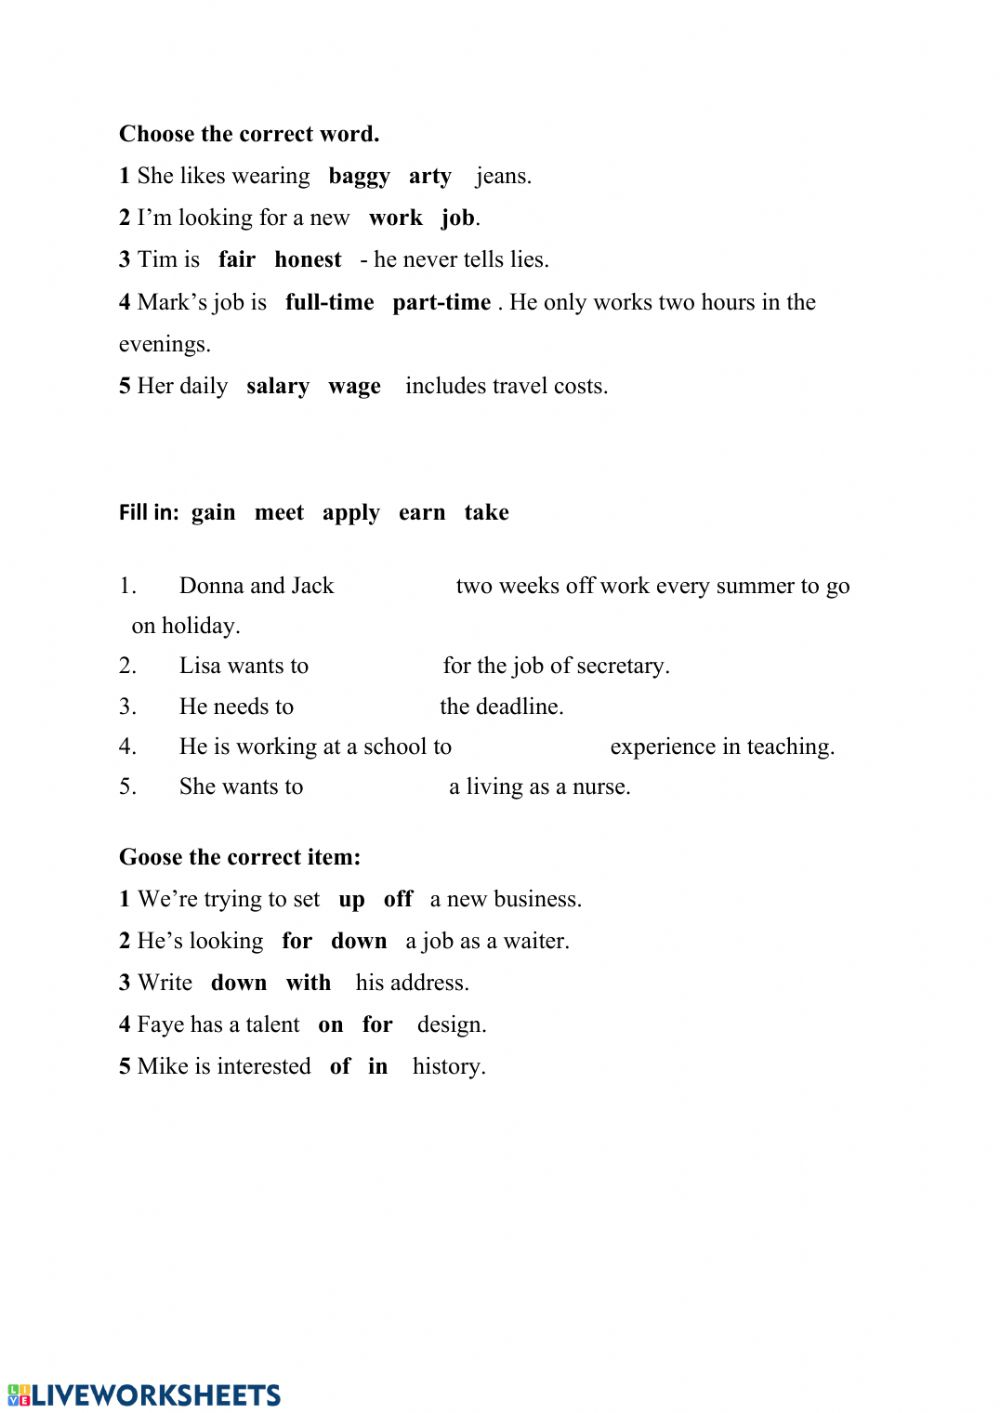 hight resolution of Vocabulary exercise for Grade 8